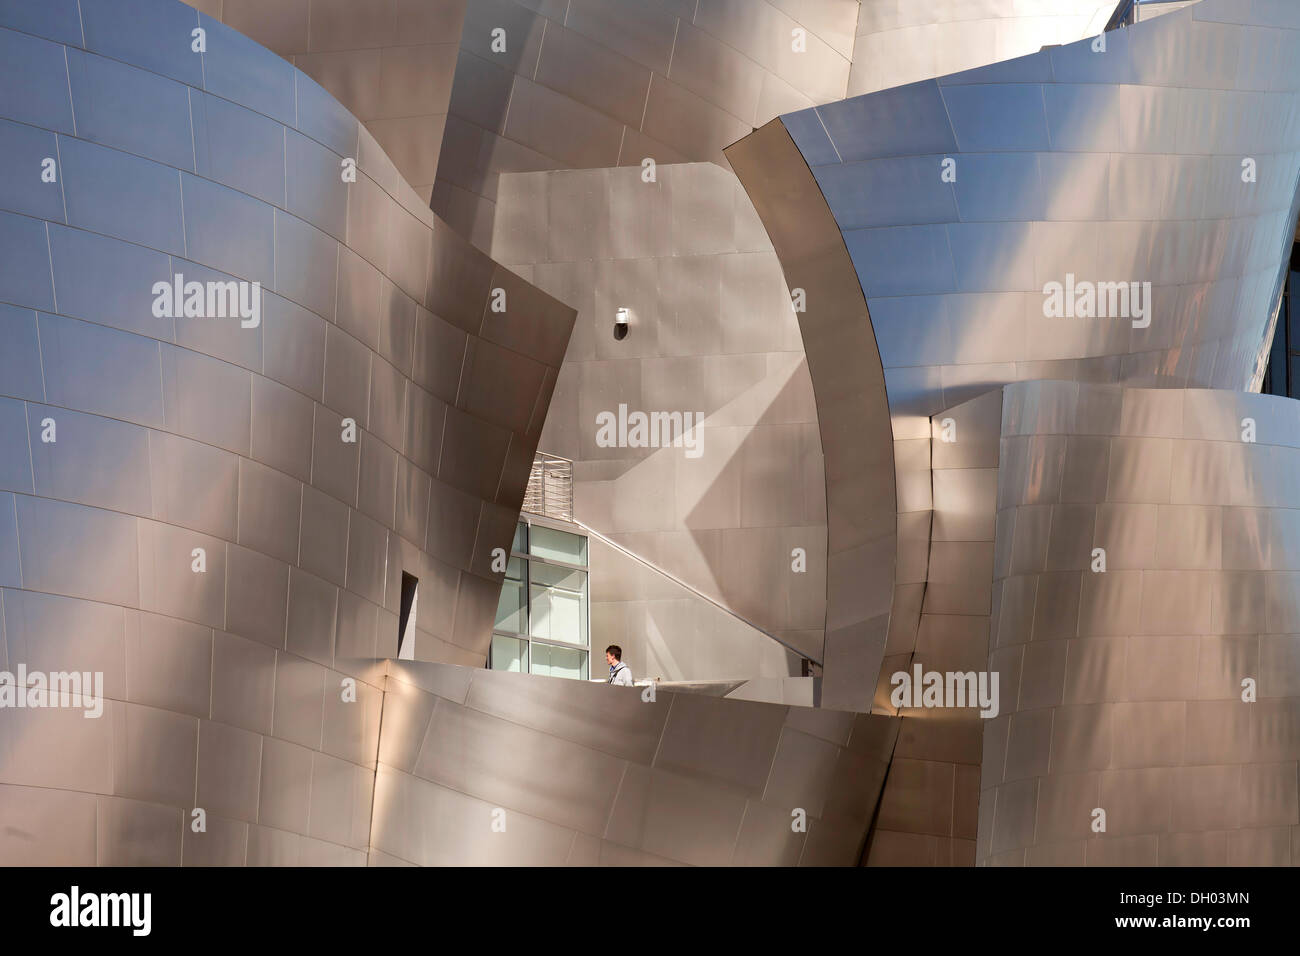 Walt Disney Concert Hall, modern architecture by Frank Gehry, Los Angeles, California, United States Stock Photo